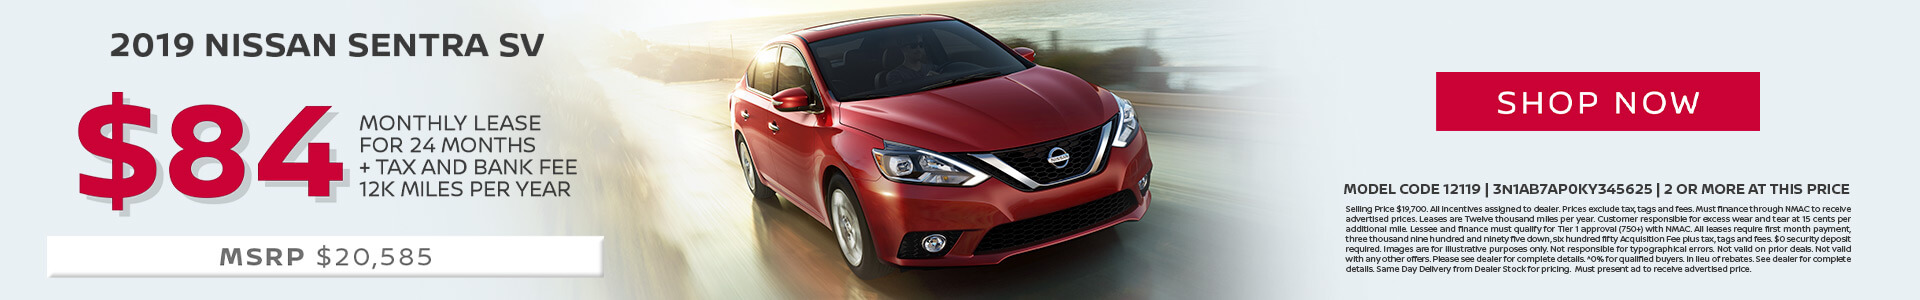 Nissan Sentra $84 Lease